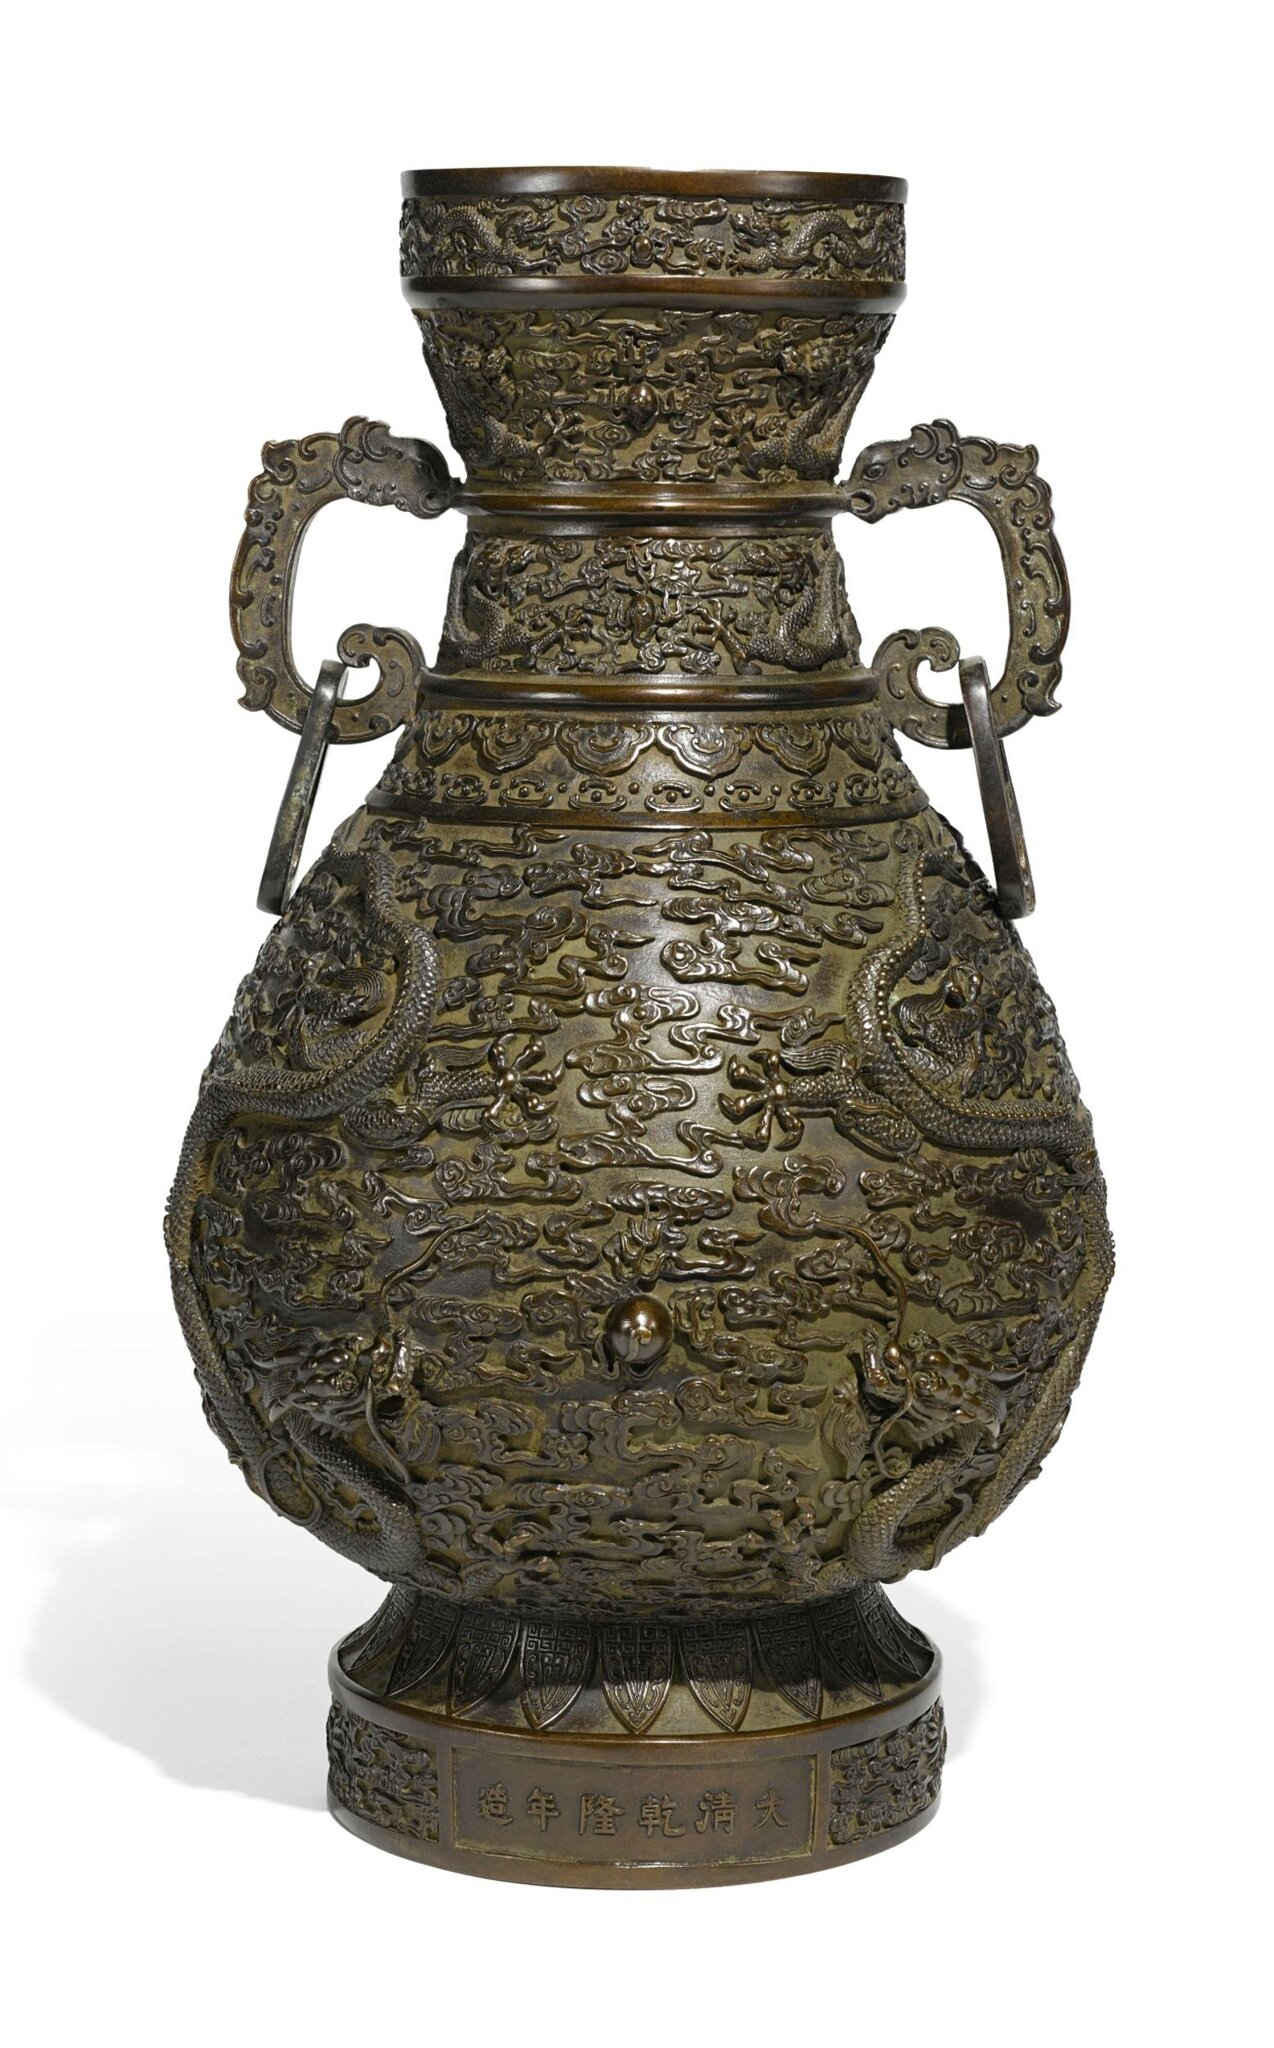 A rare and finely cast imperial bronze dragon vase qianlong a rare and finely cast imperial bronze dragon vase qianlong mark and period 1736 1795 reviewsmspy